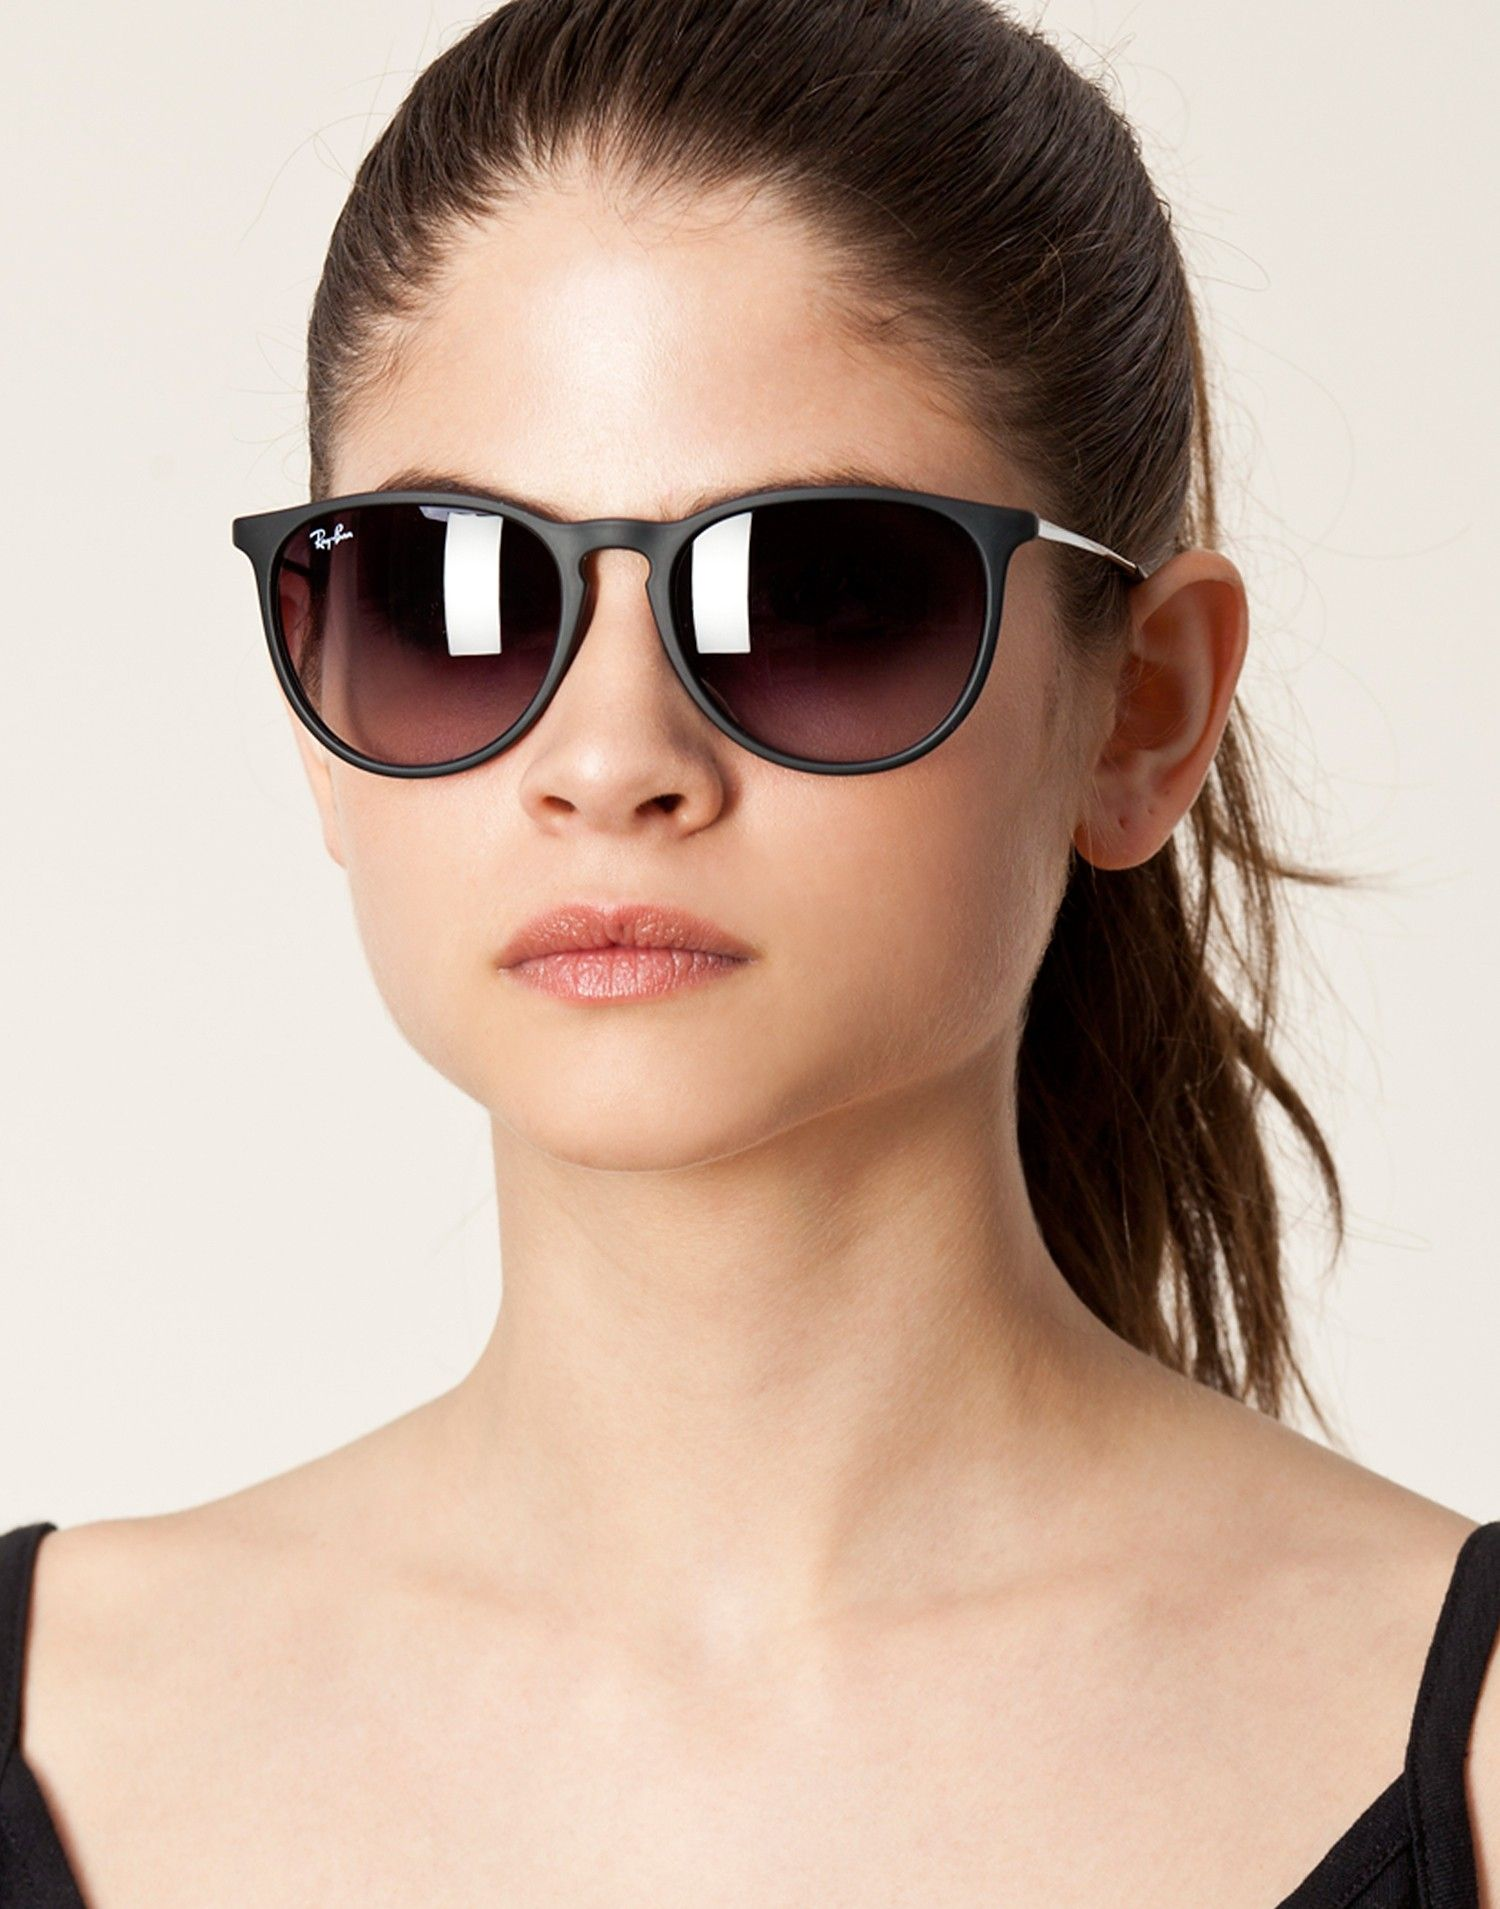 c7b7717d69 ray ban erika - Google Search